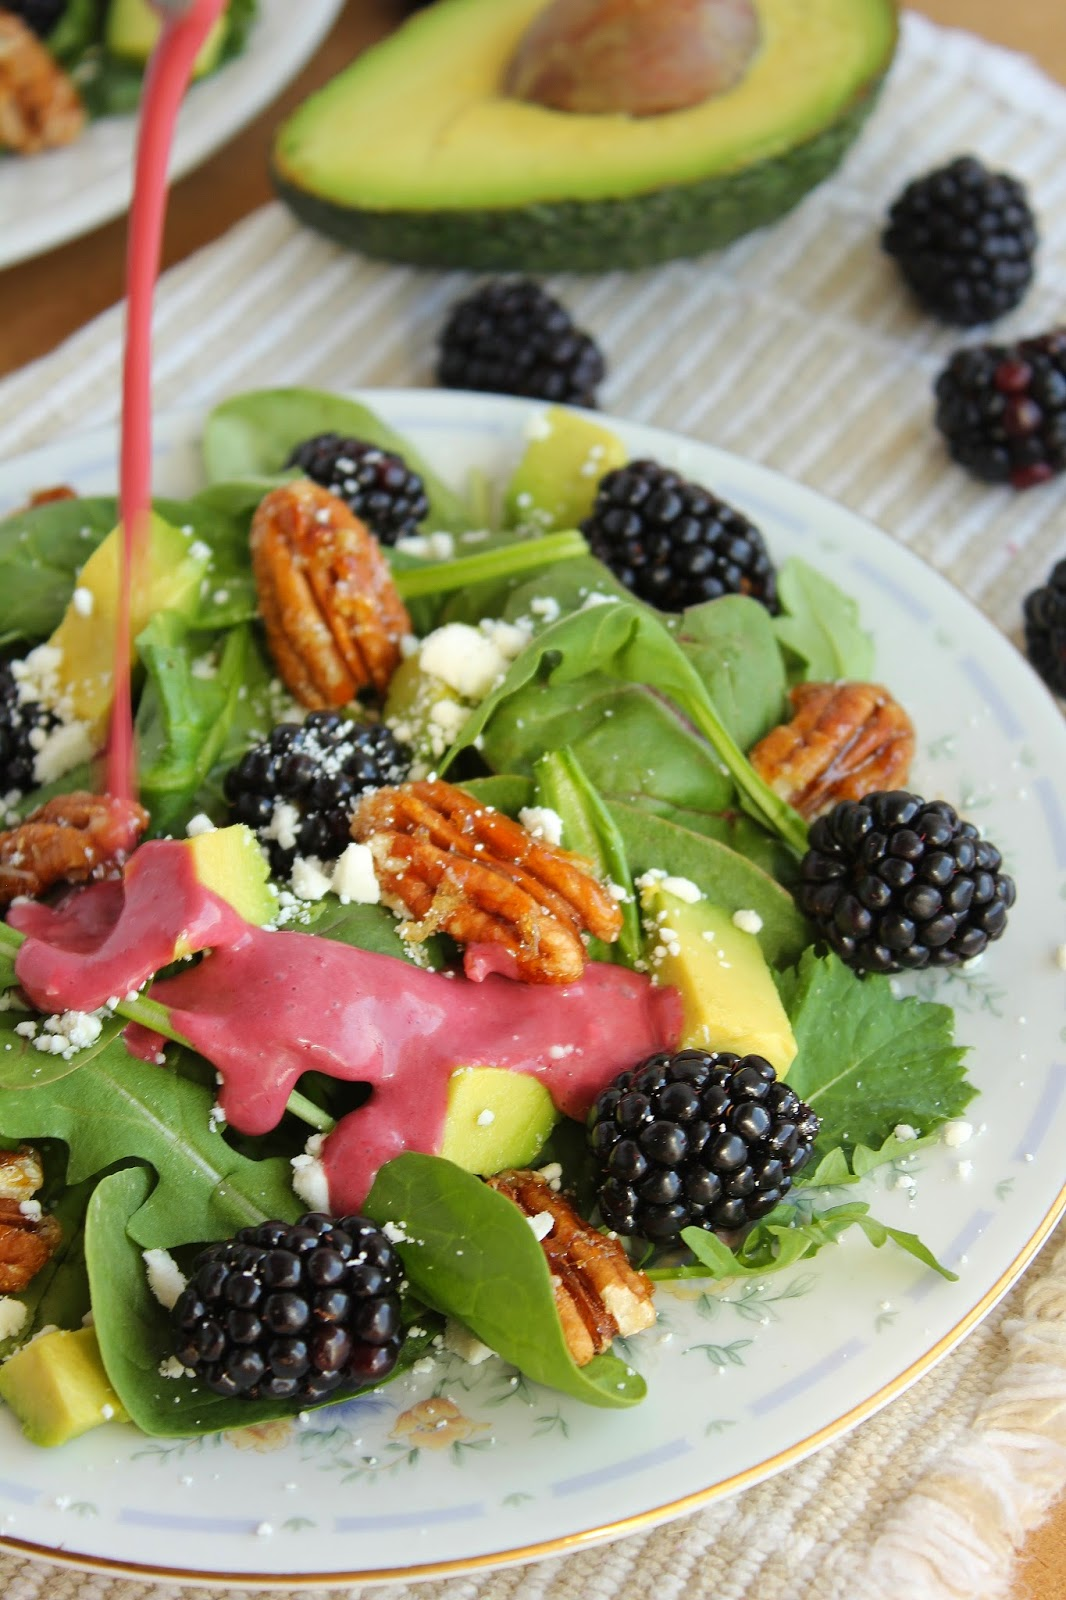 ... and Blackberry Salad with Candied Walnuts and Blackberry Vinaigrette